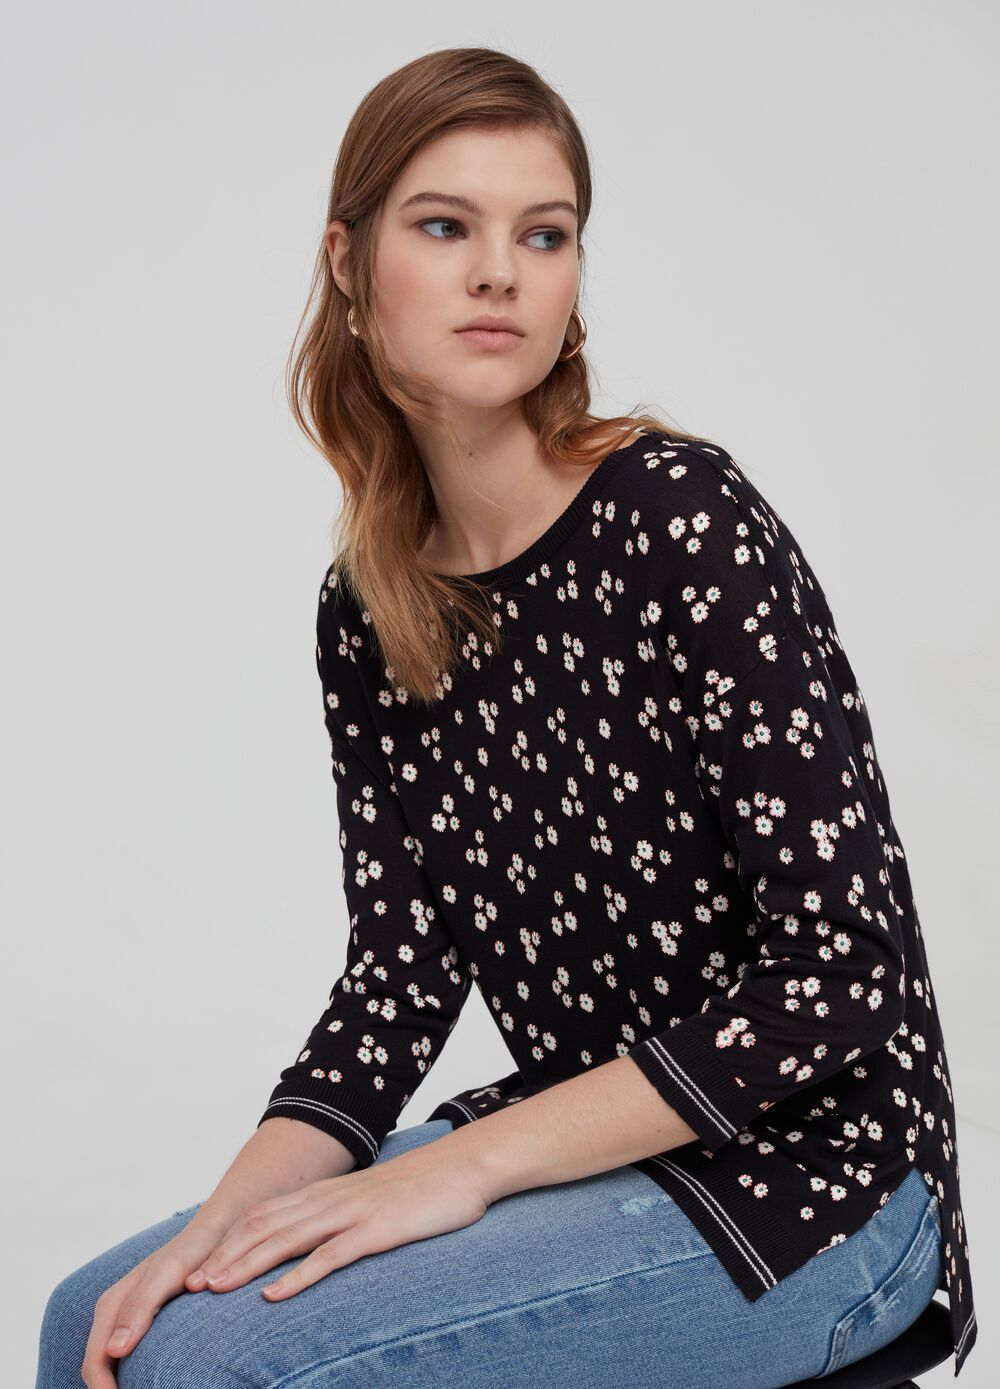 100% viscose knitted top